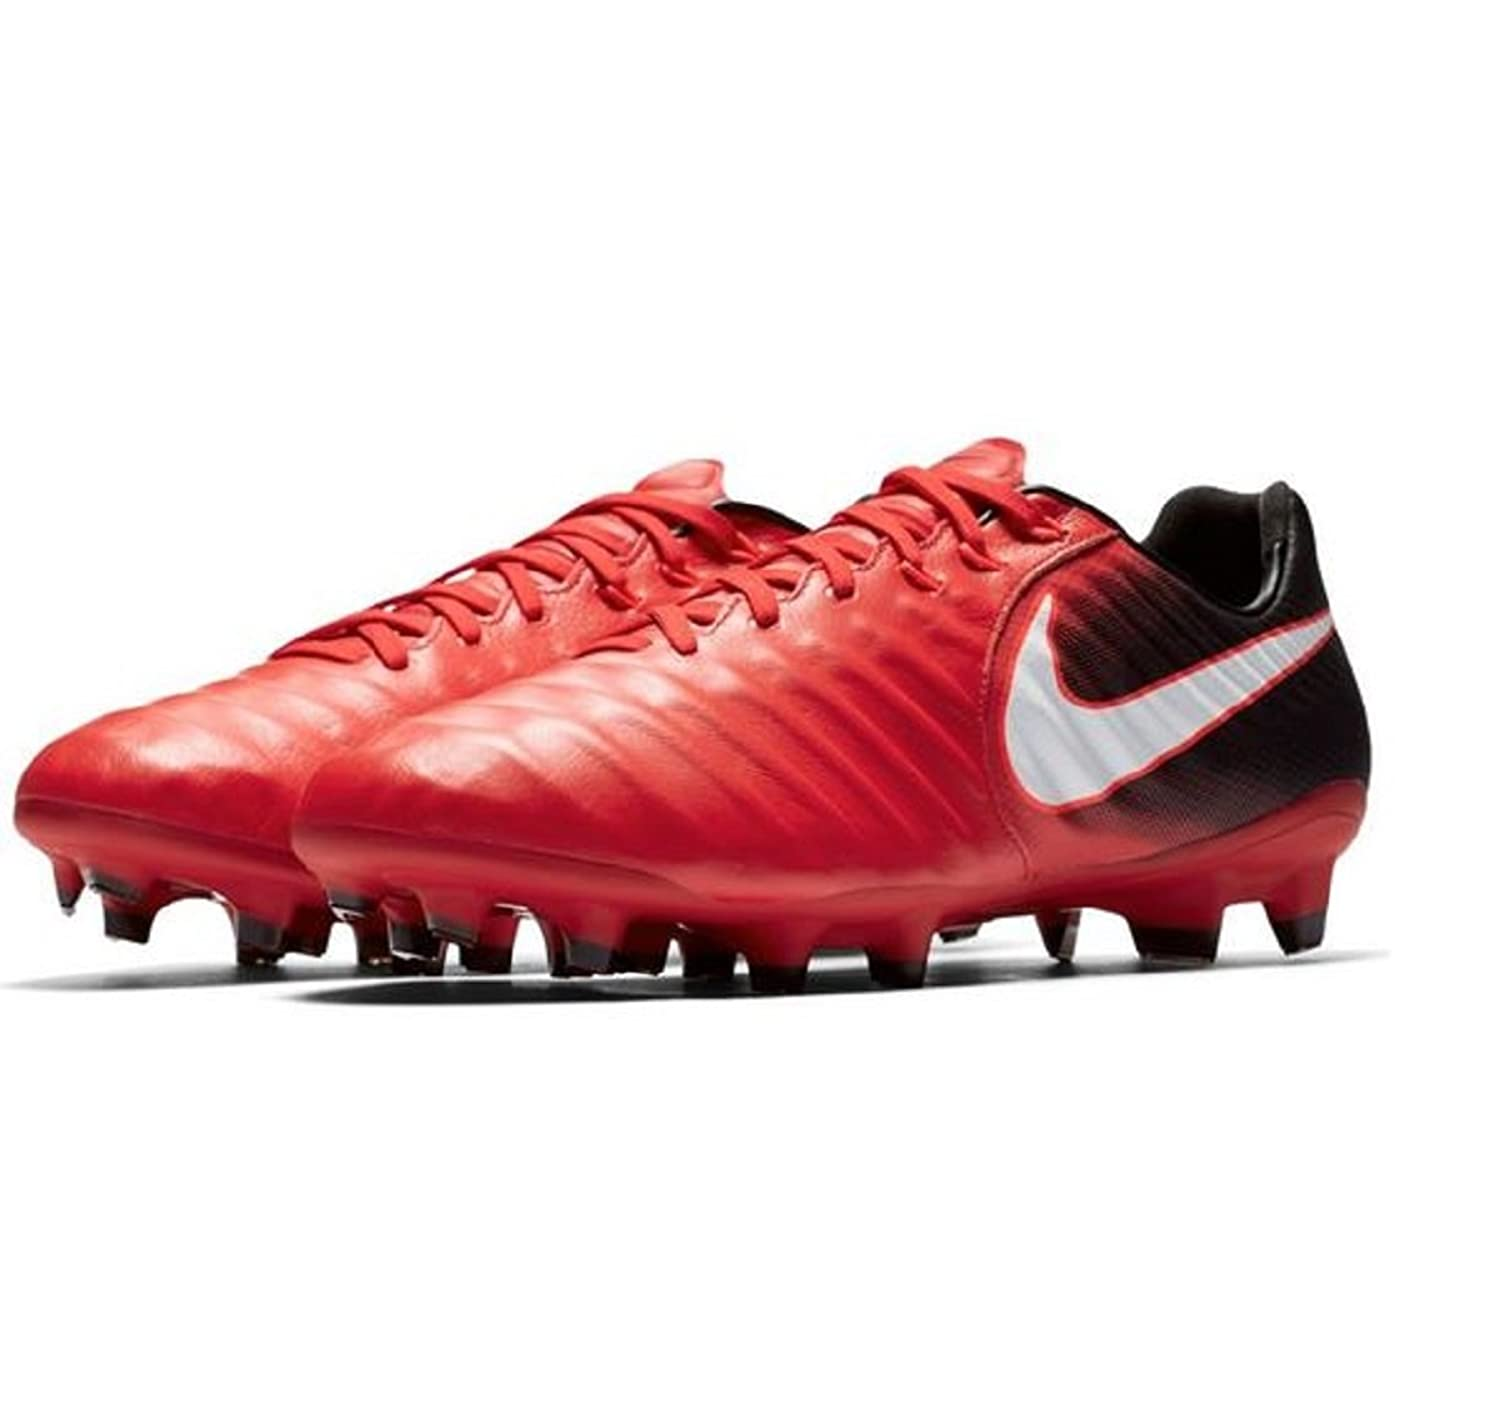 NIKE Men's Tiempo Legacy III Leather FG Soccer Cleat (Sz. 9) Red, Black B06XBTHLQQ Parent